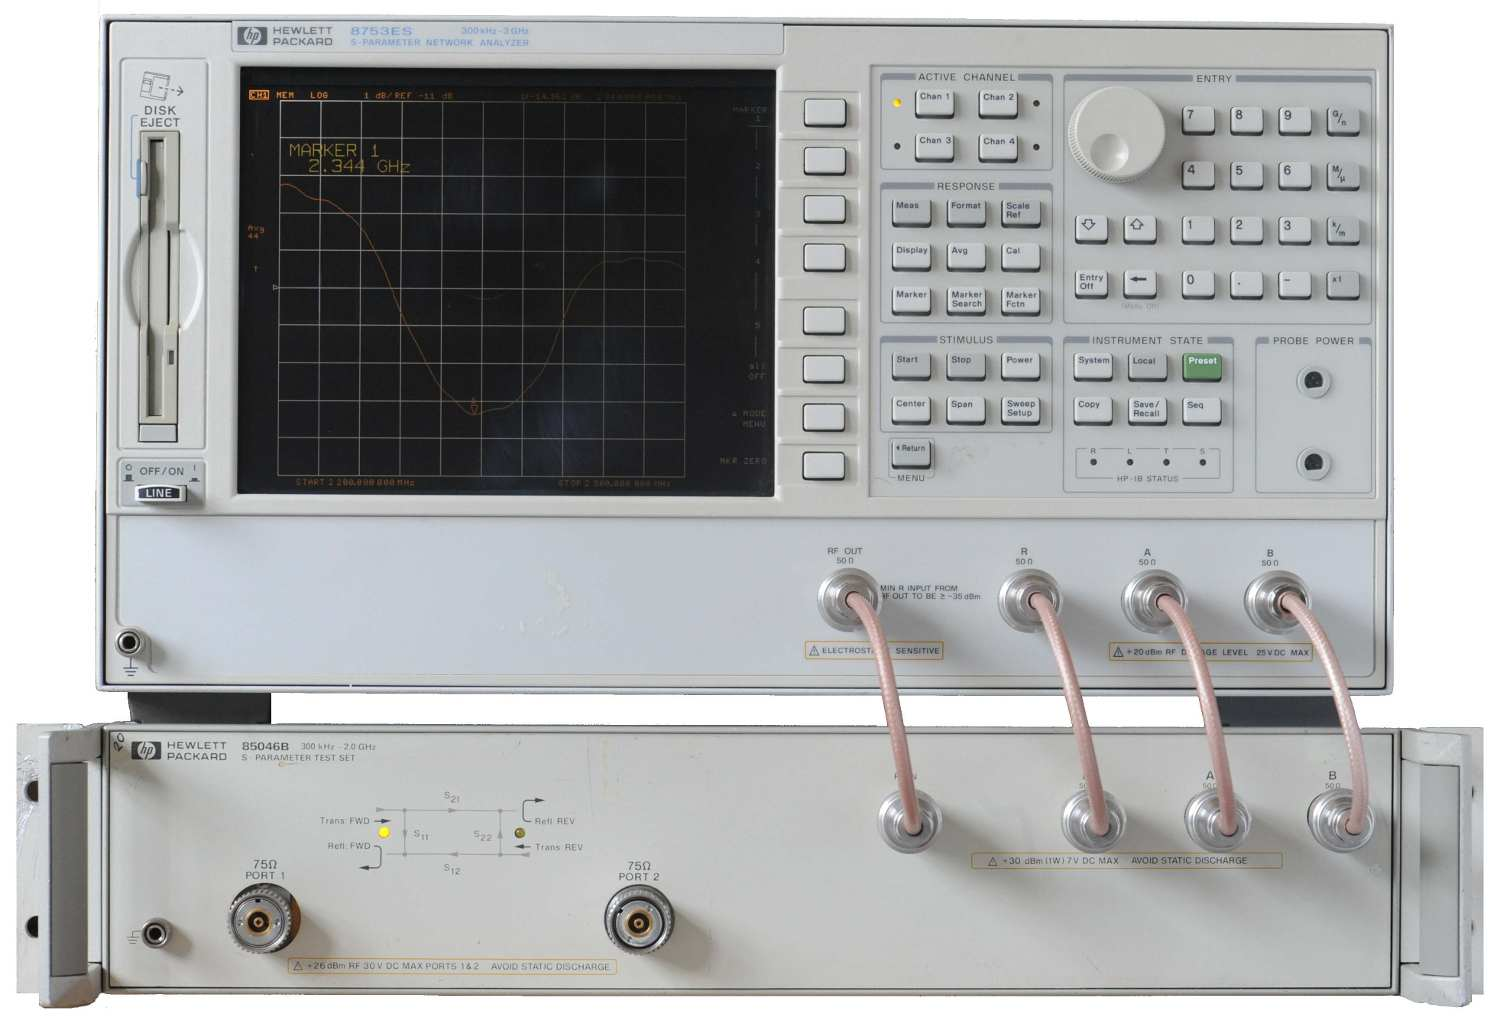 A vector network analyzer (VNA)